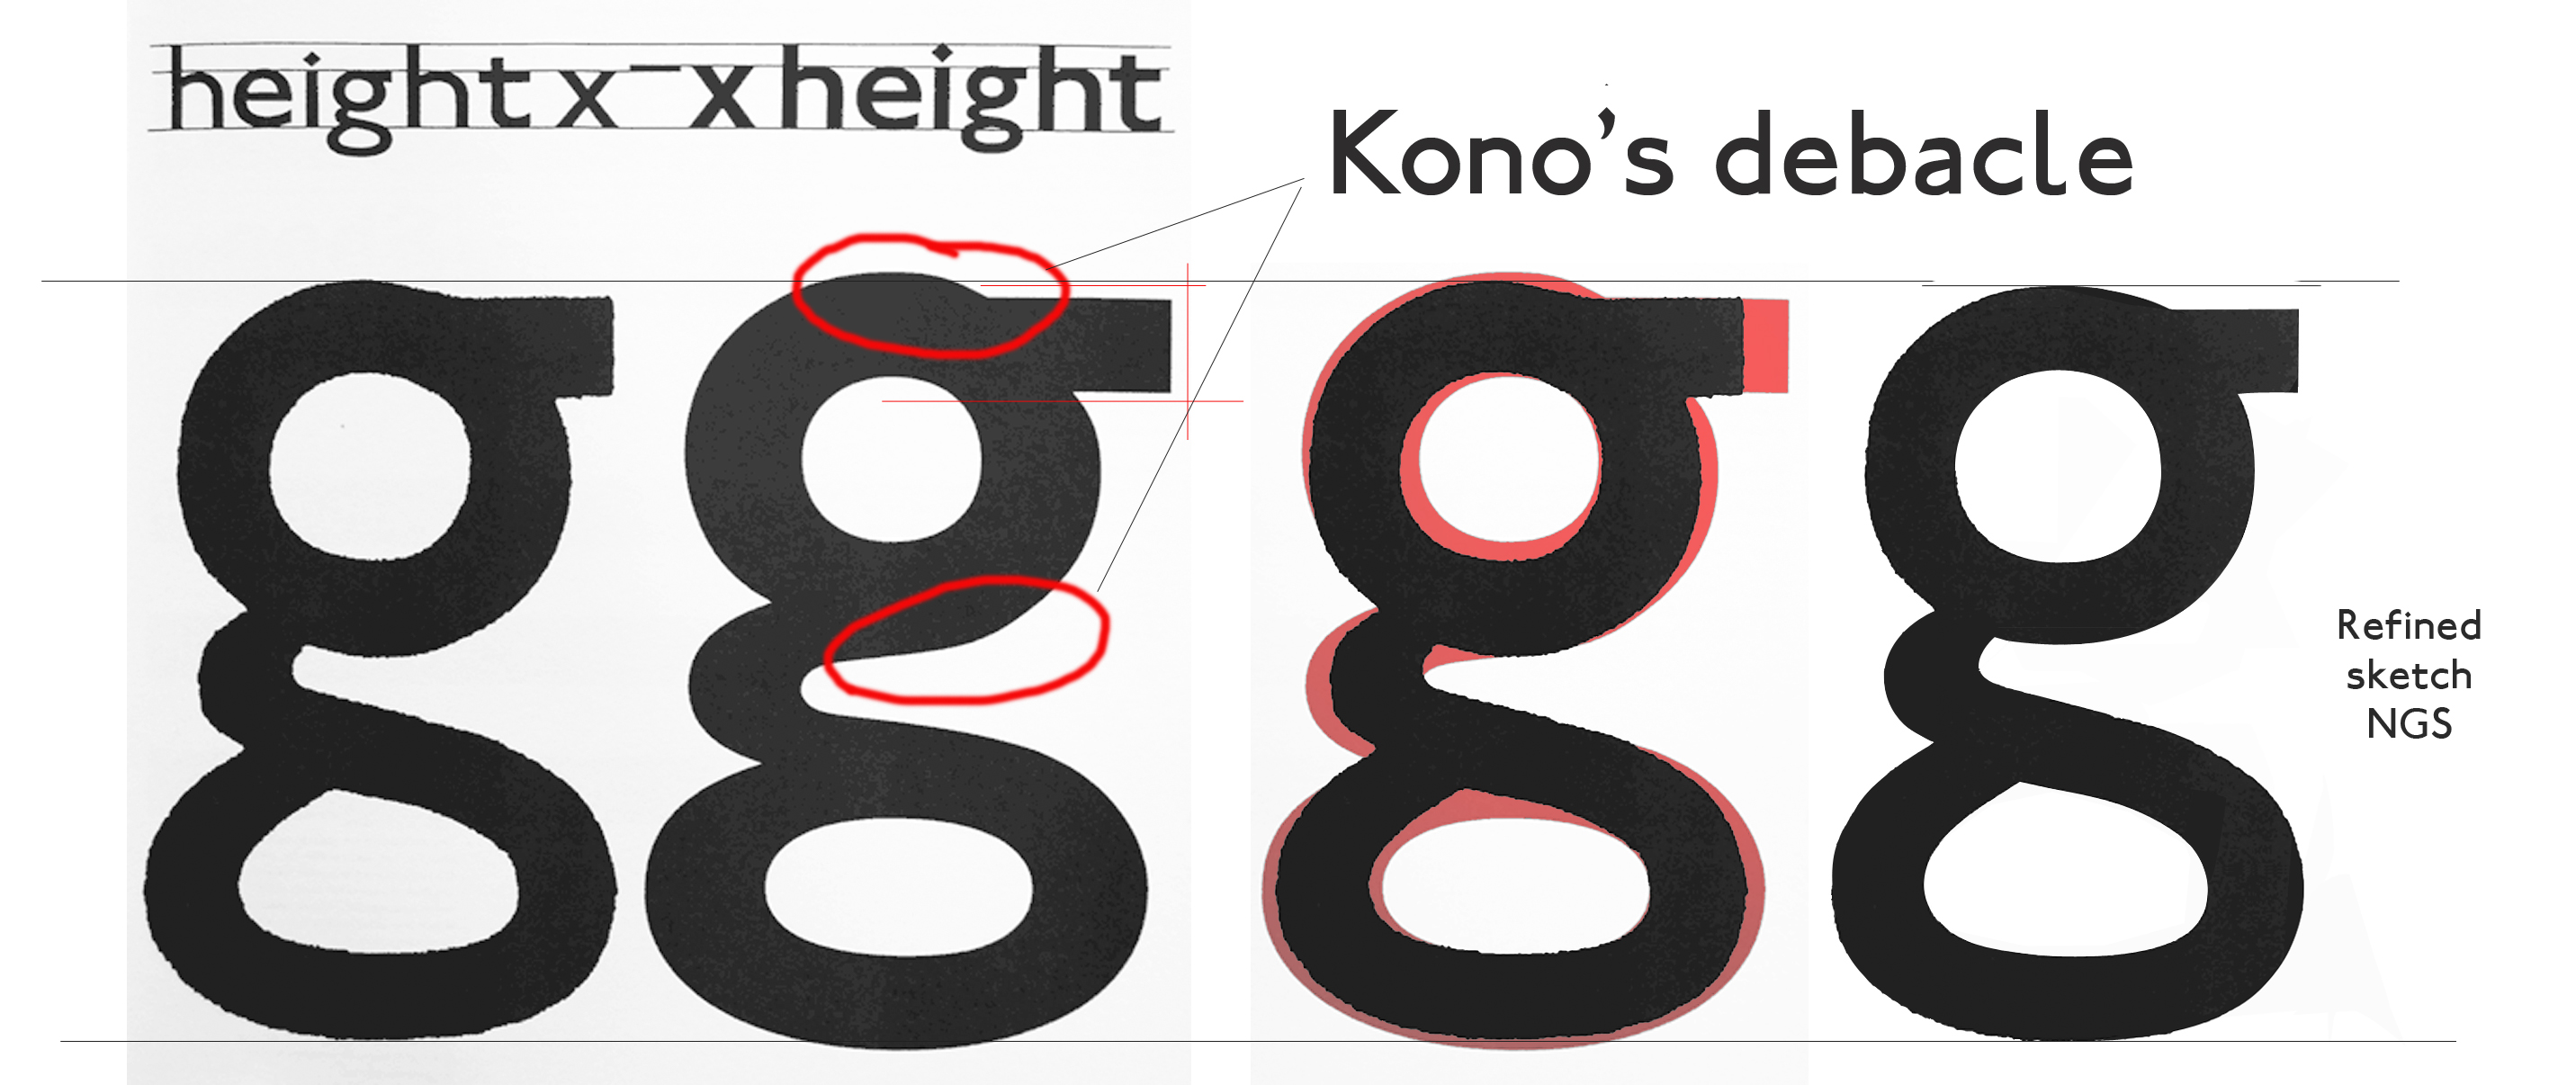 Revision of the Original 1917 Johnston Underground font showing flaws in the recent 'New' Johnston glyph.